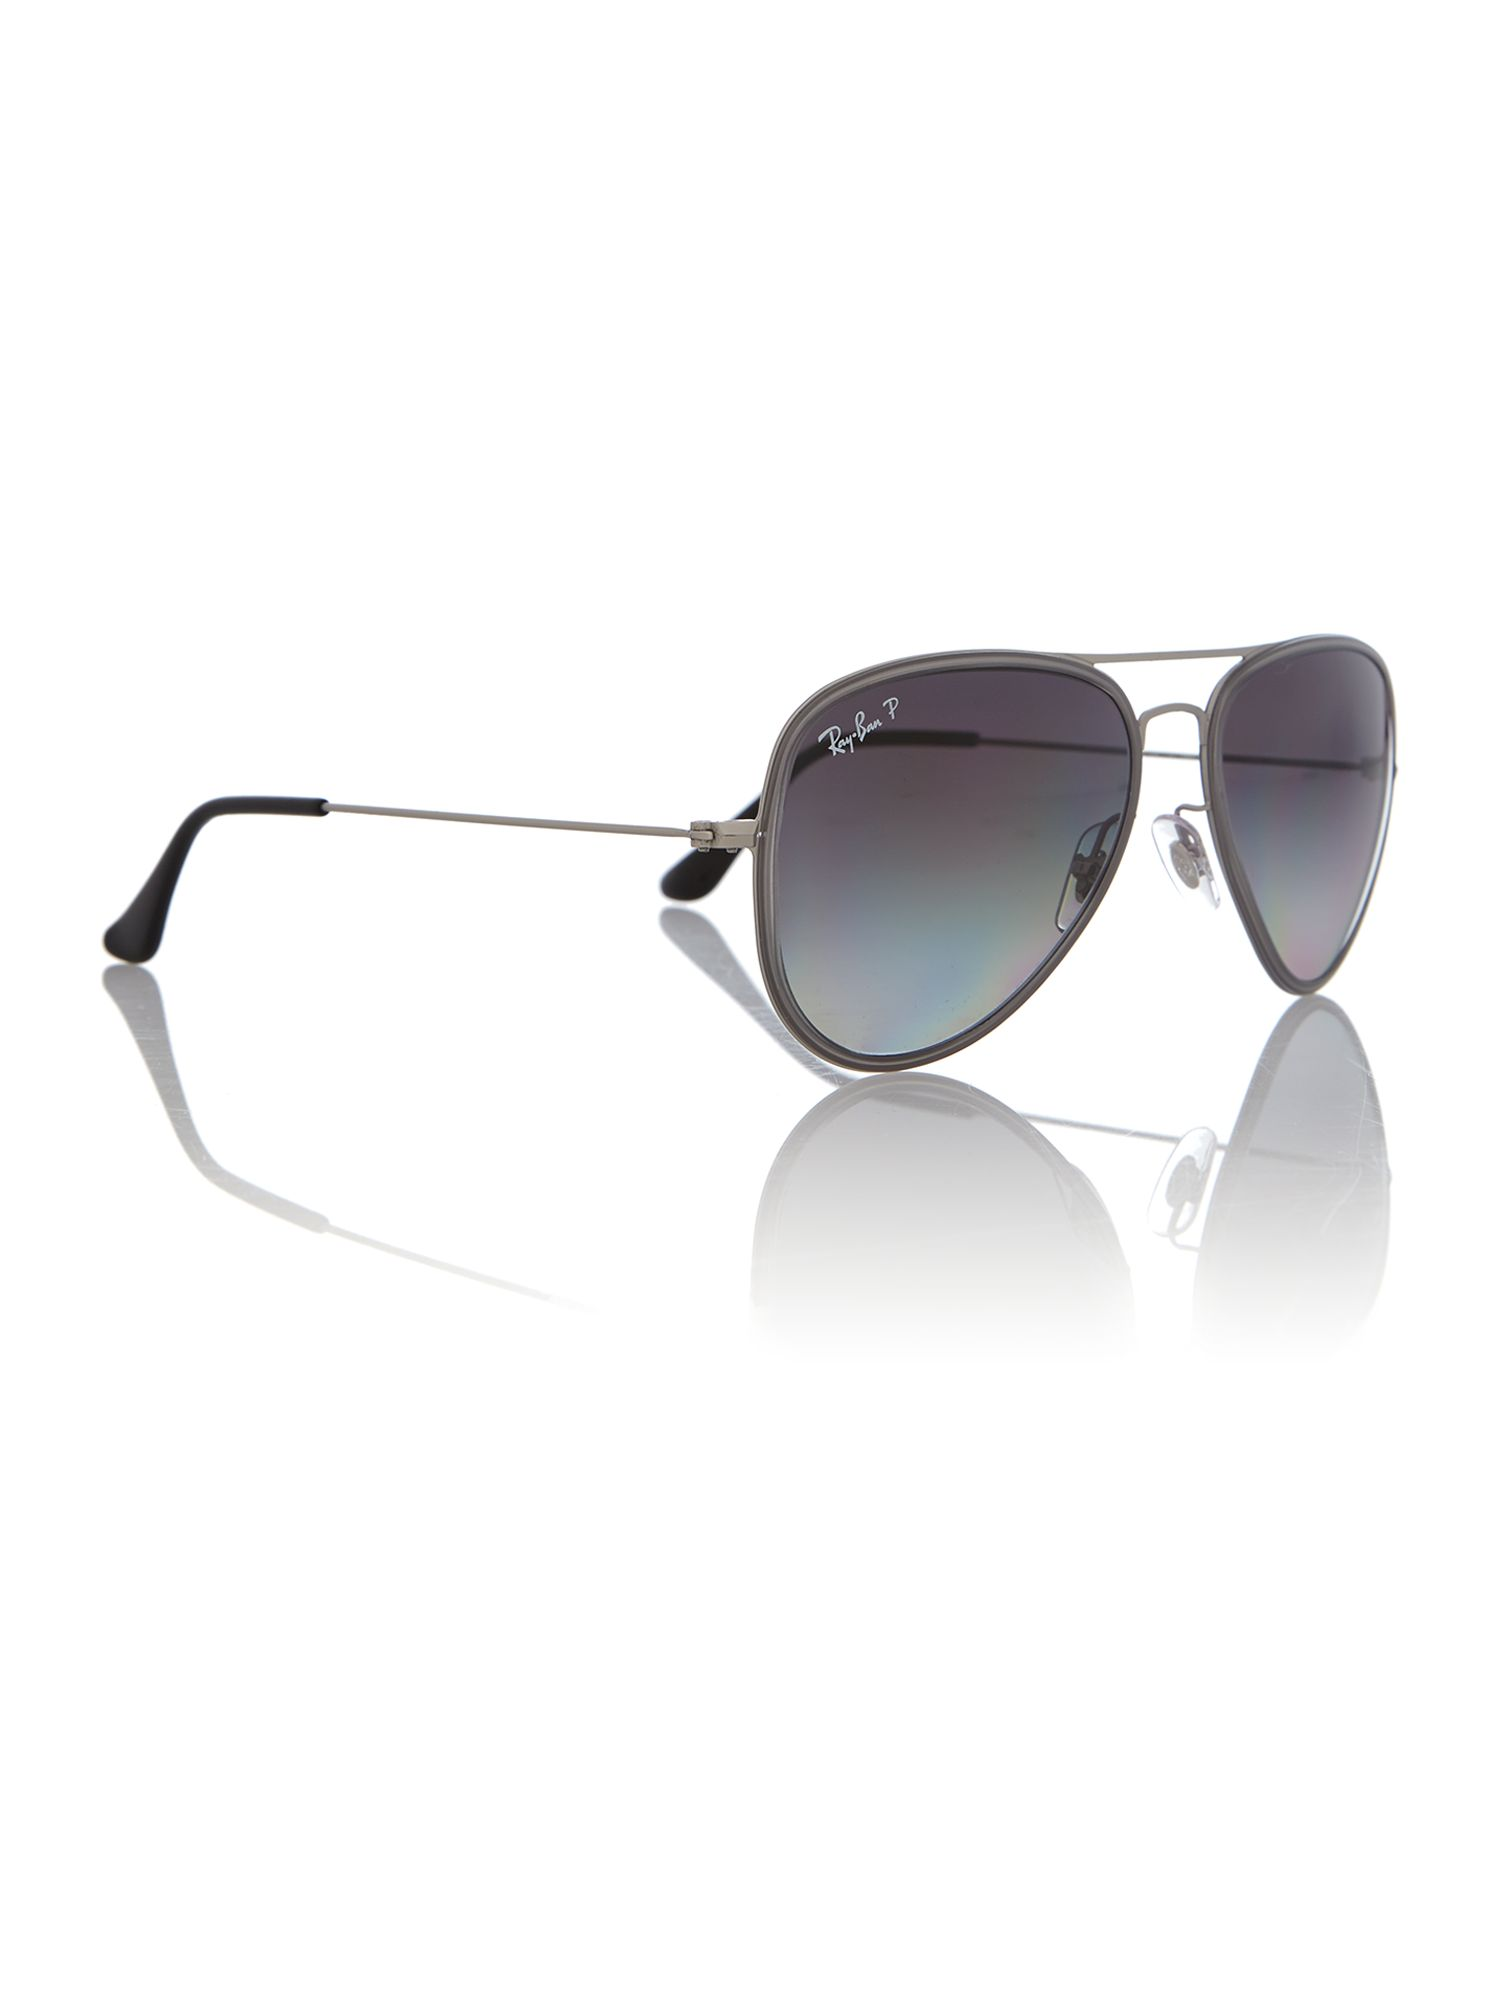 Rb3513m men`s pilot sunglasses